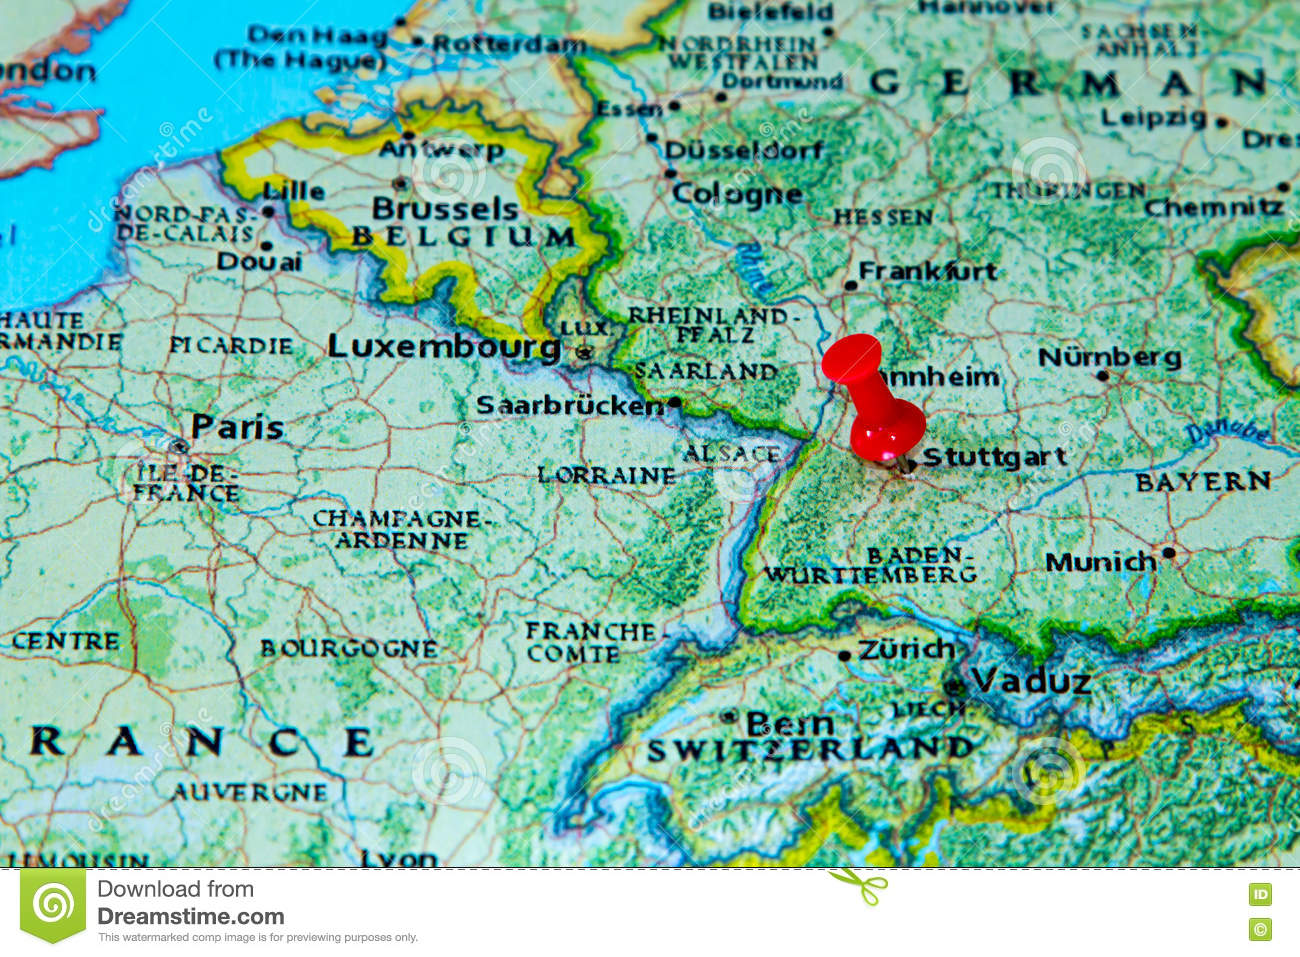 Stuttgart Germany Pinned On A Map Of Europe Stock Photo Image of